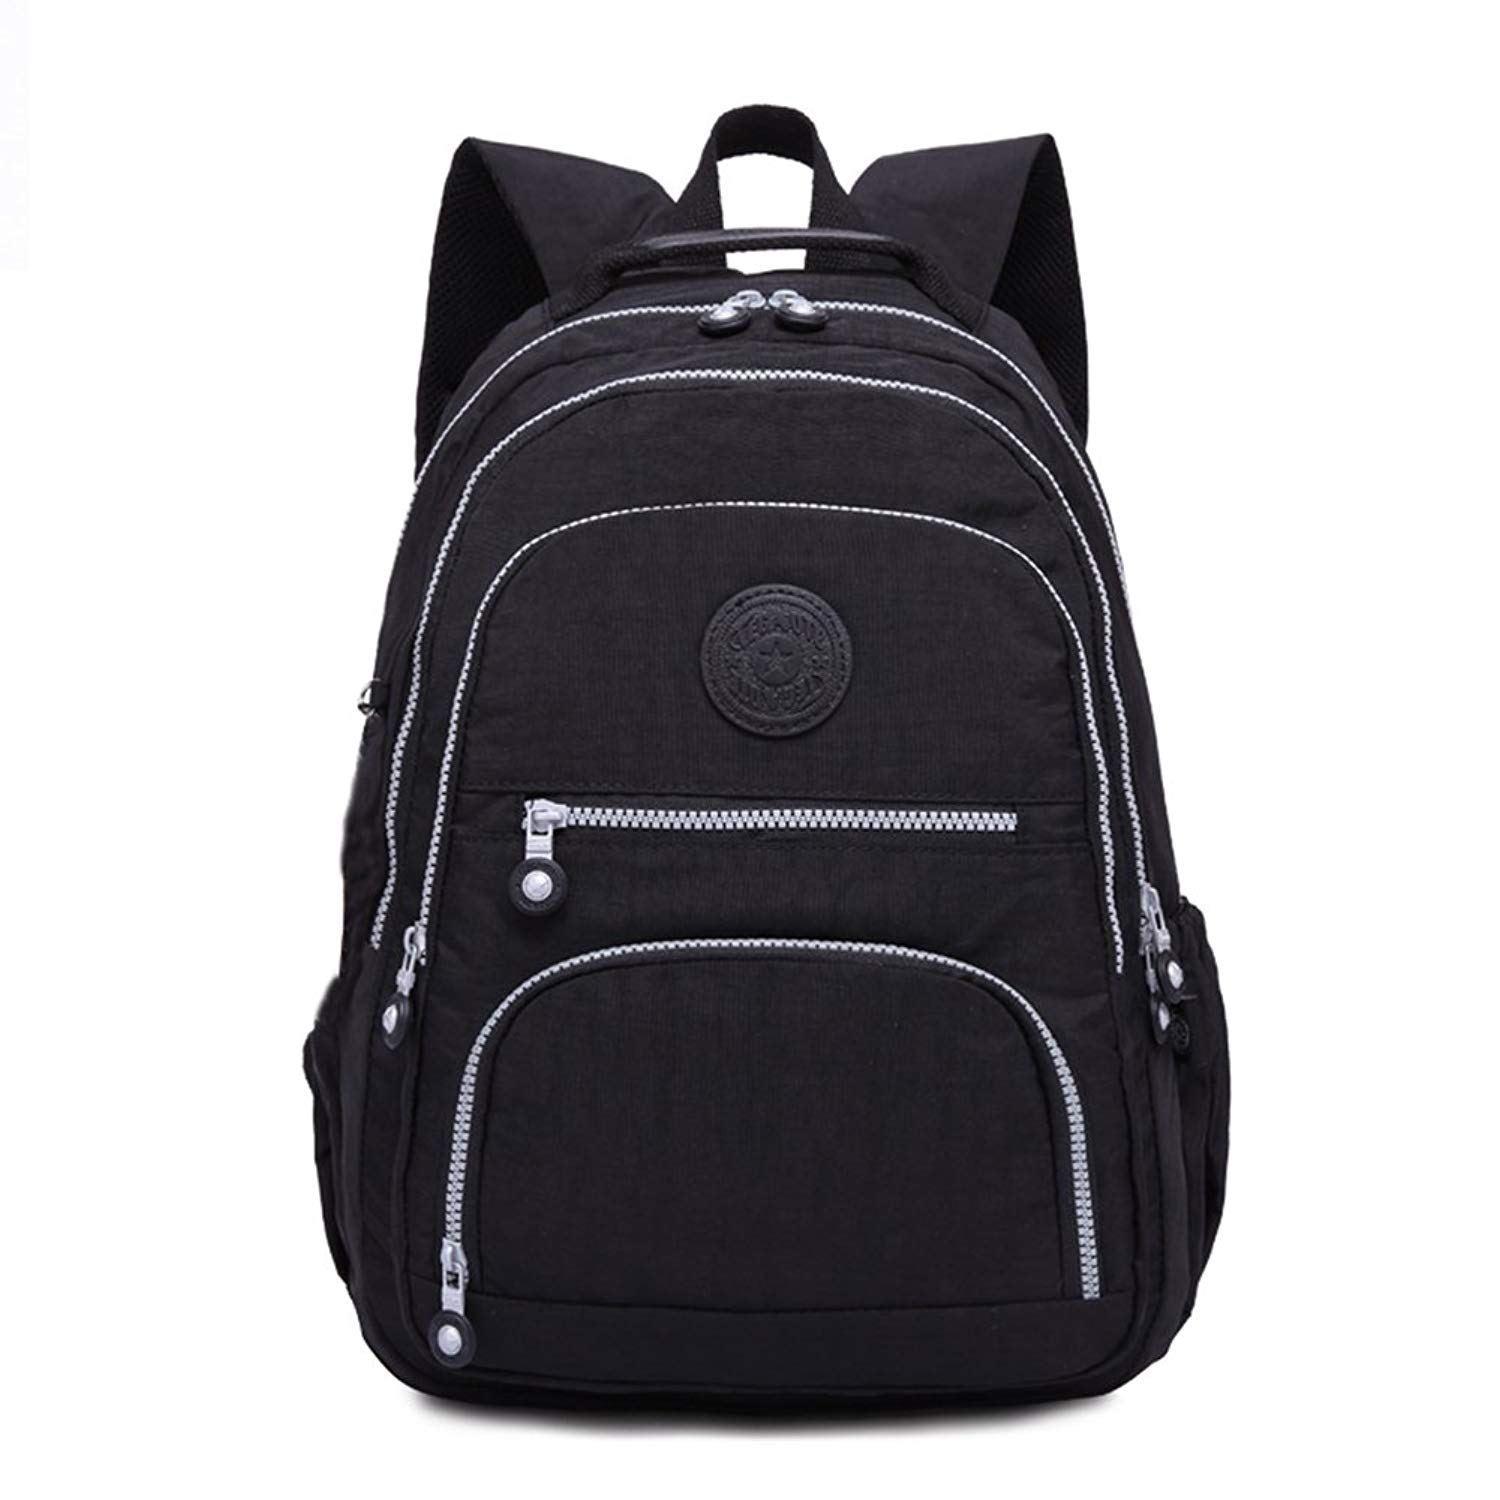 Classic Casual Daypack Ultra Lightweight Nylon Backpack Water Resistant  Bagpack 4e90281ac4